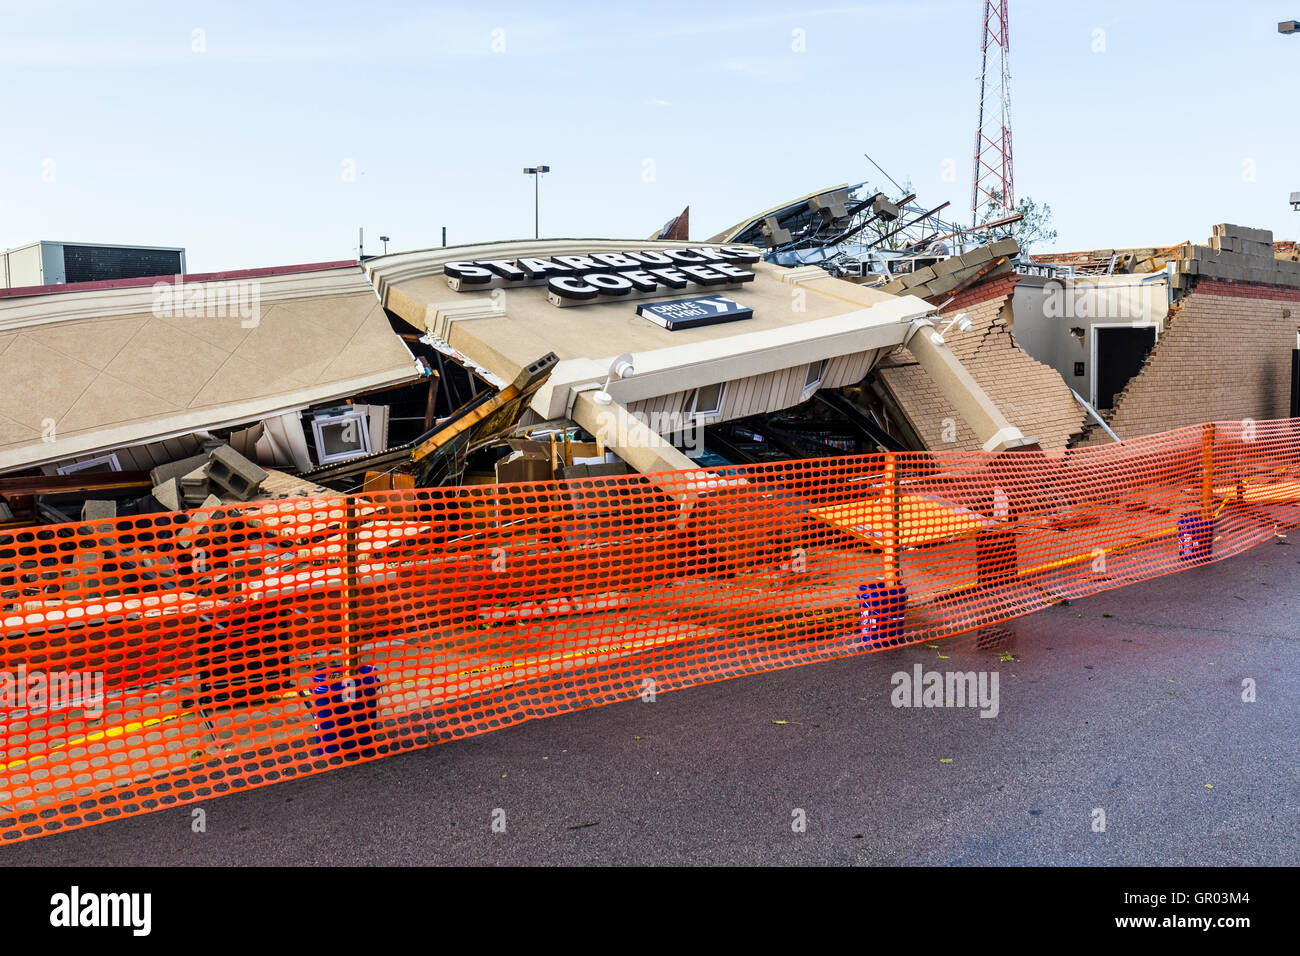 Kokomo - August 24, 2016: Several EF3 tornadoes touched down, one of which destroyed a local Starbucks 13 - Stock Image